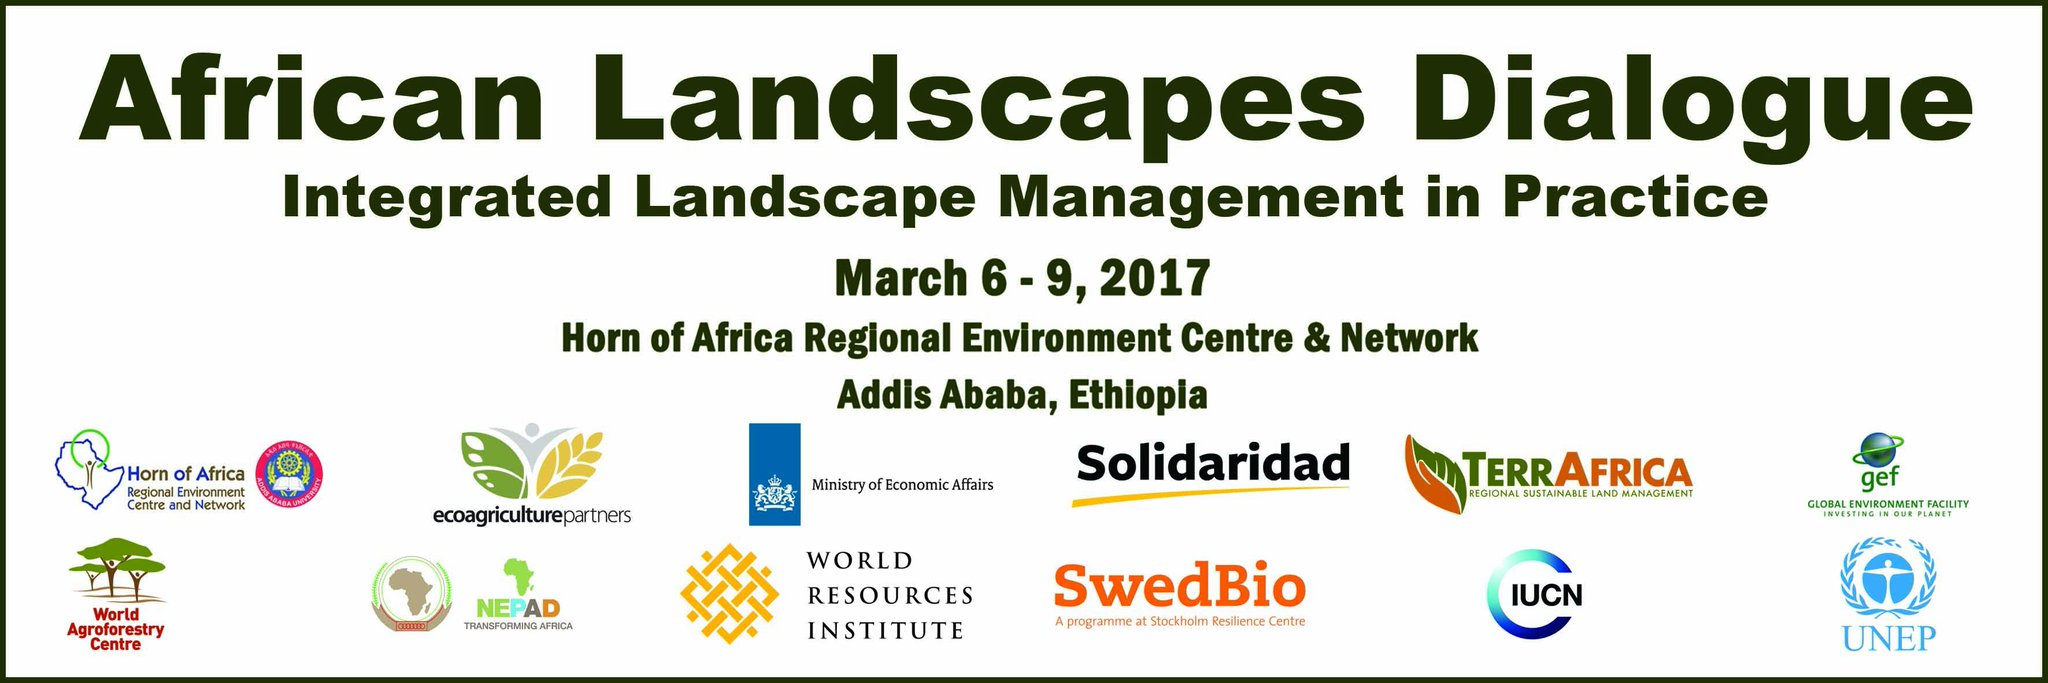 The African Landscapes Dialogue will kick off on Monday, 6th March 2017, at HoA-REN's HQs #LandscapesDialogue https://t.co/yMzRAWibQW